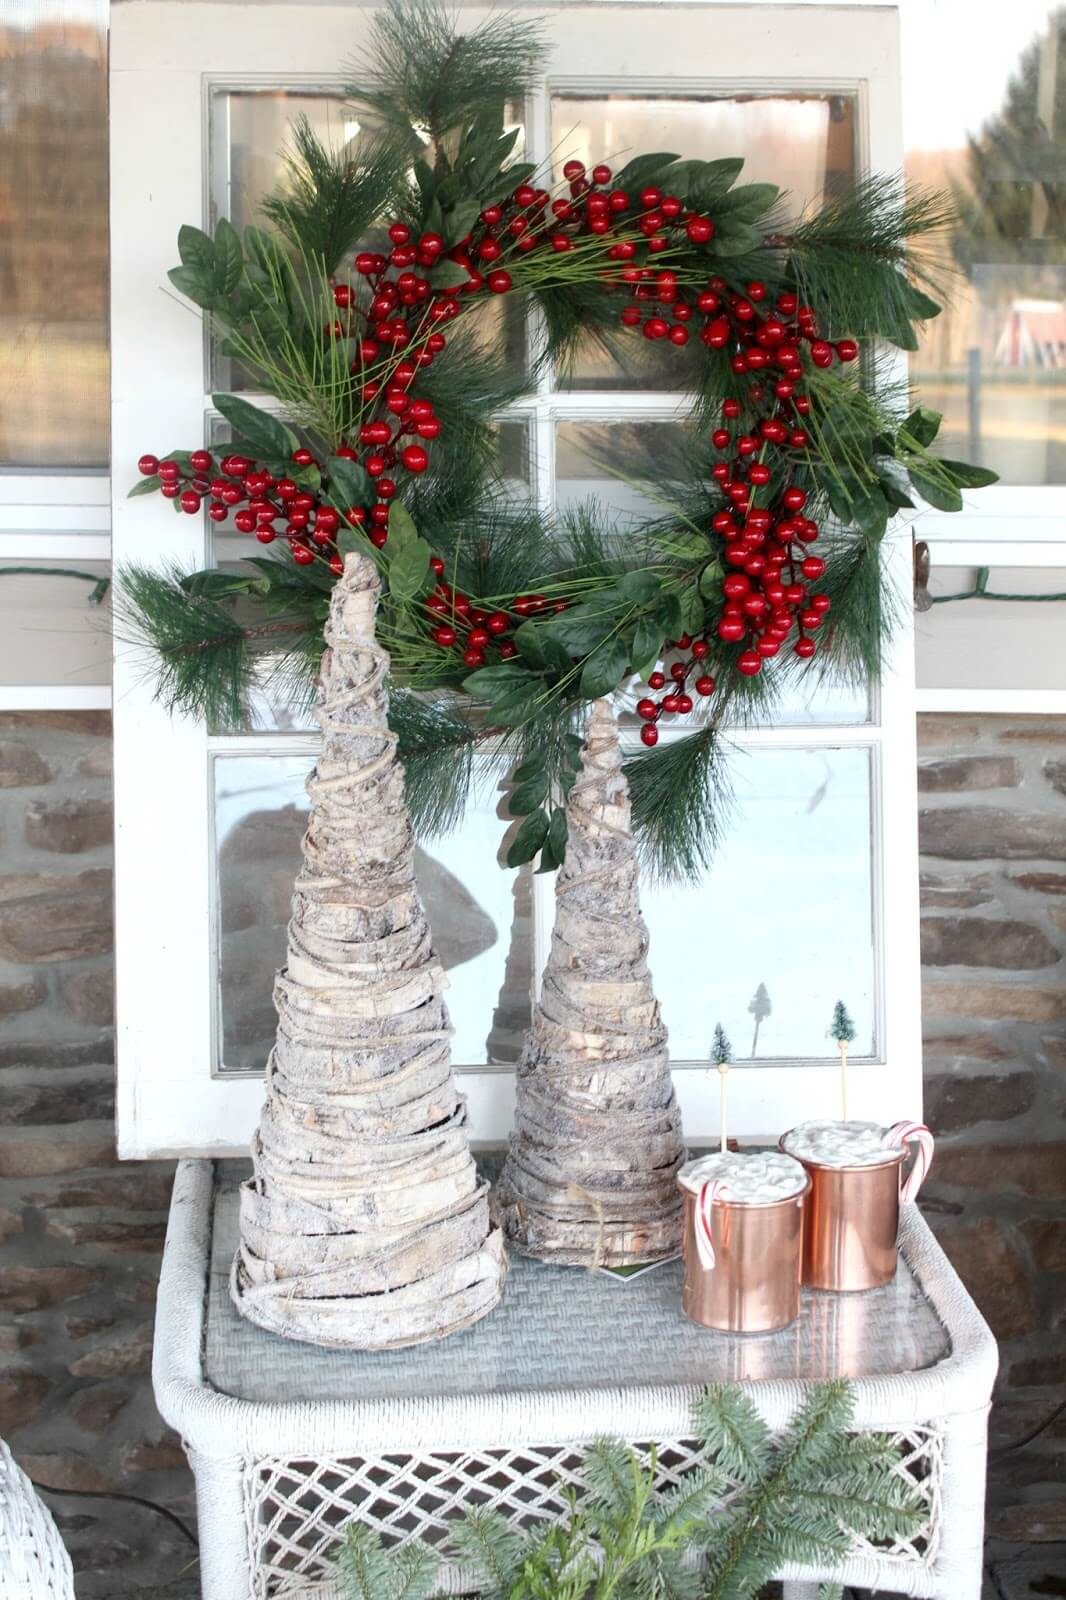 Antique Window With Holiday Wreath Porch Display